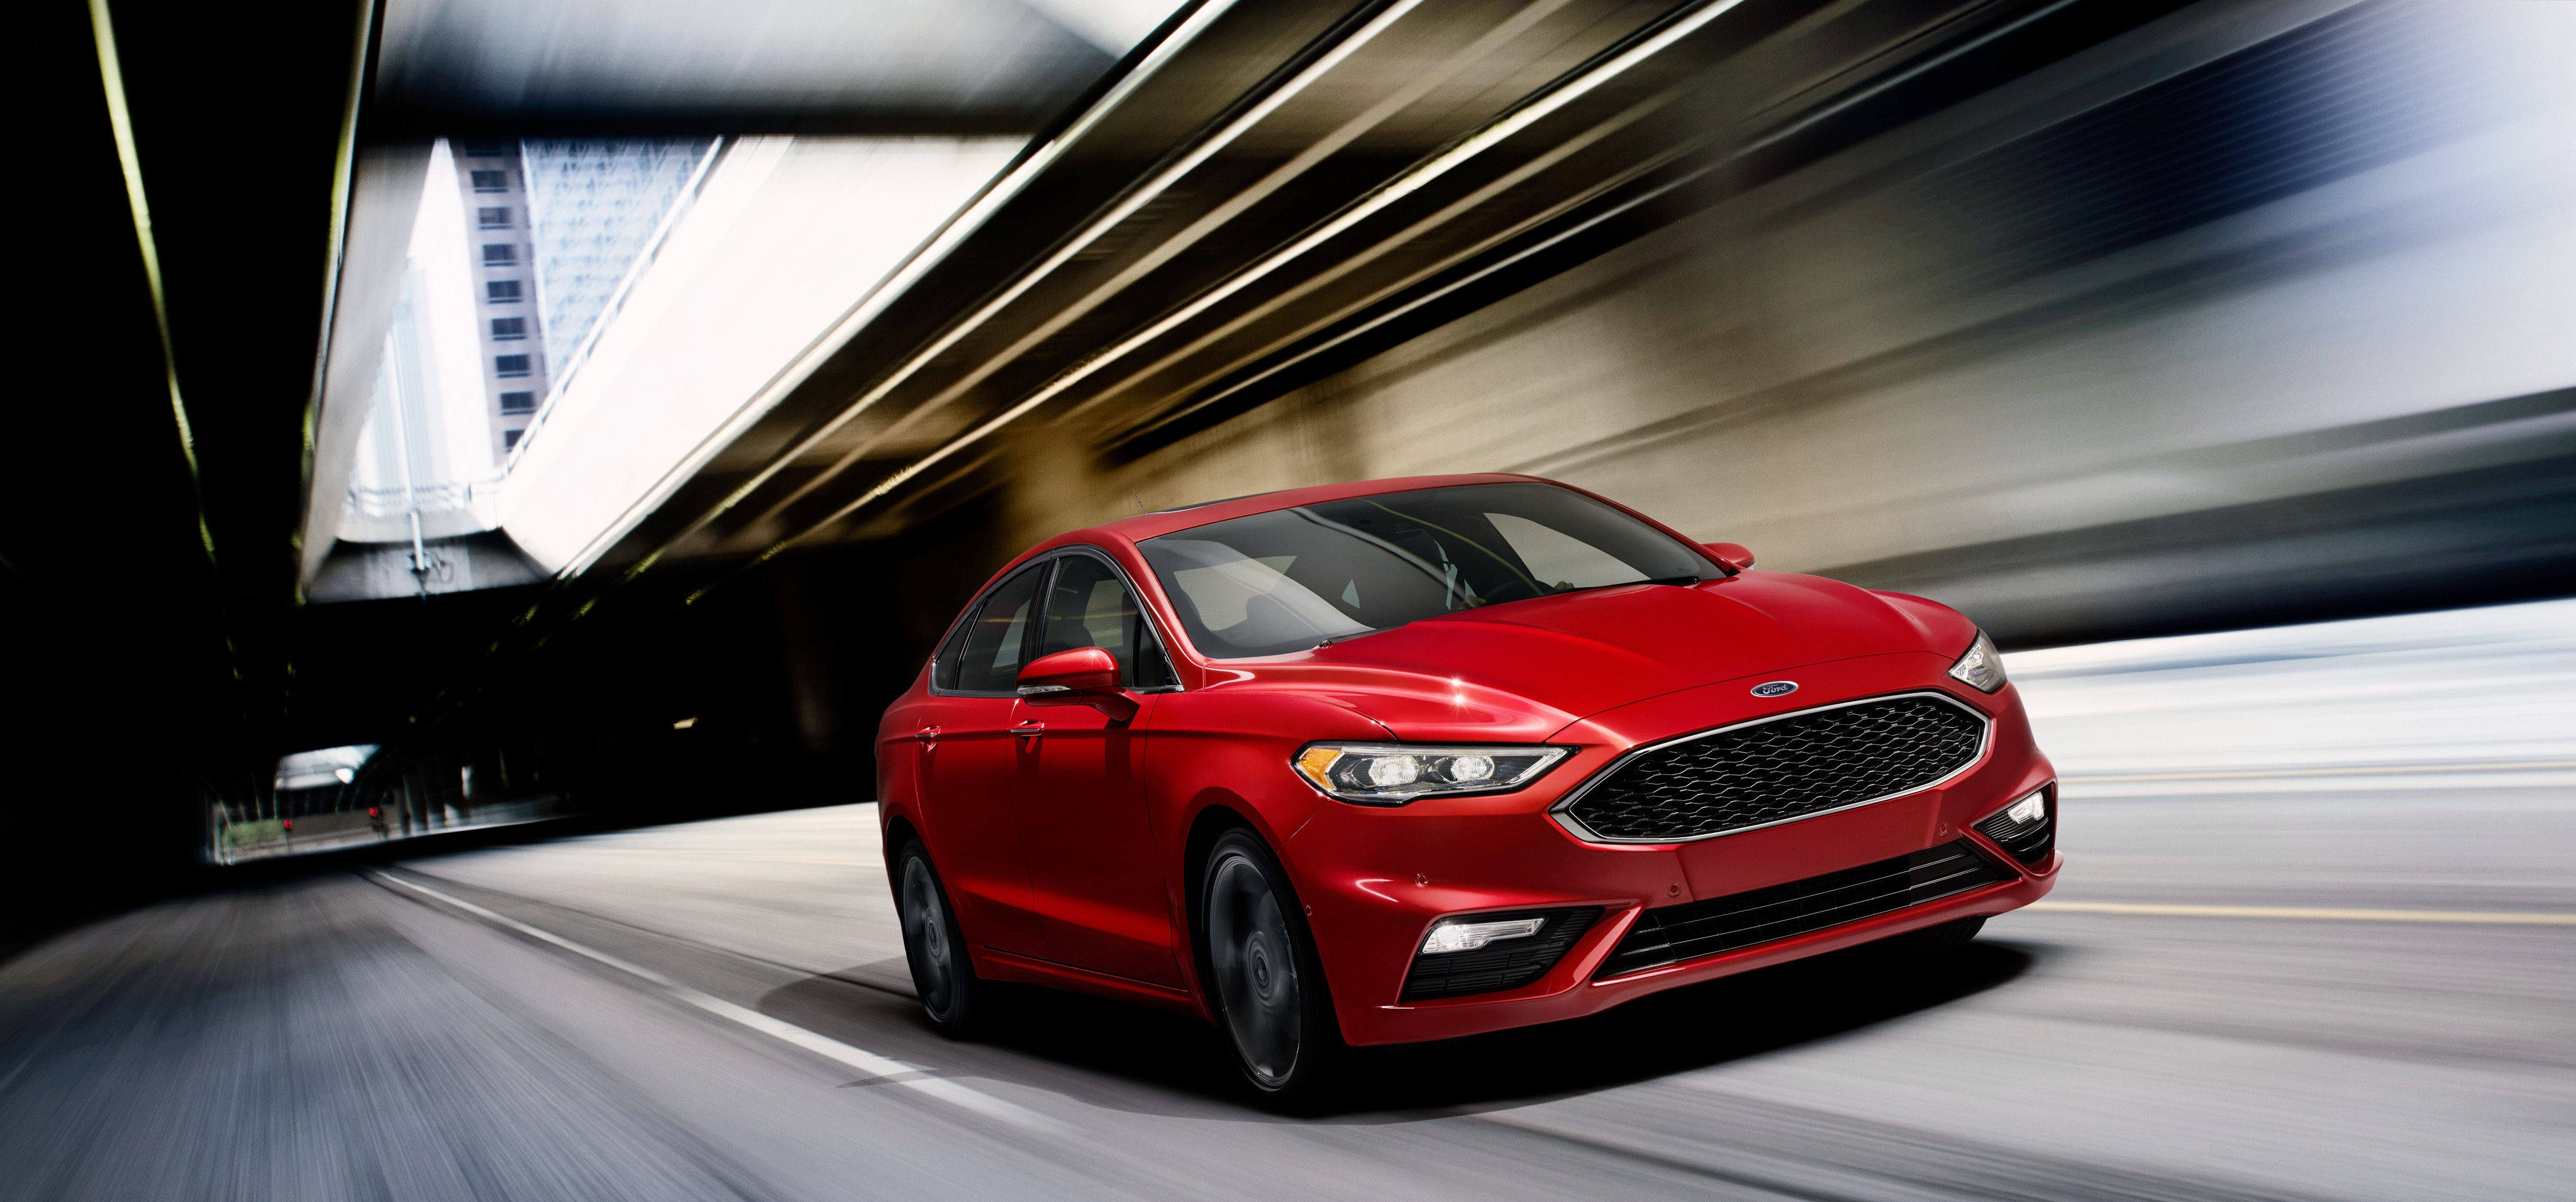 Ford Fusion Redesign Cancelled Declining Sales Are To Blame on 2012 Ford Fusion Engine